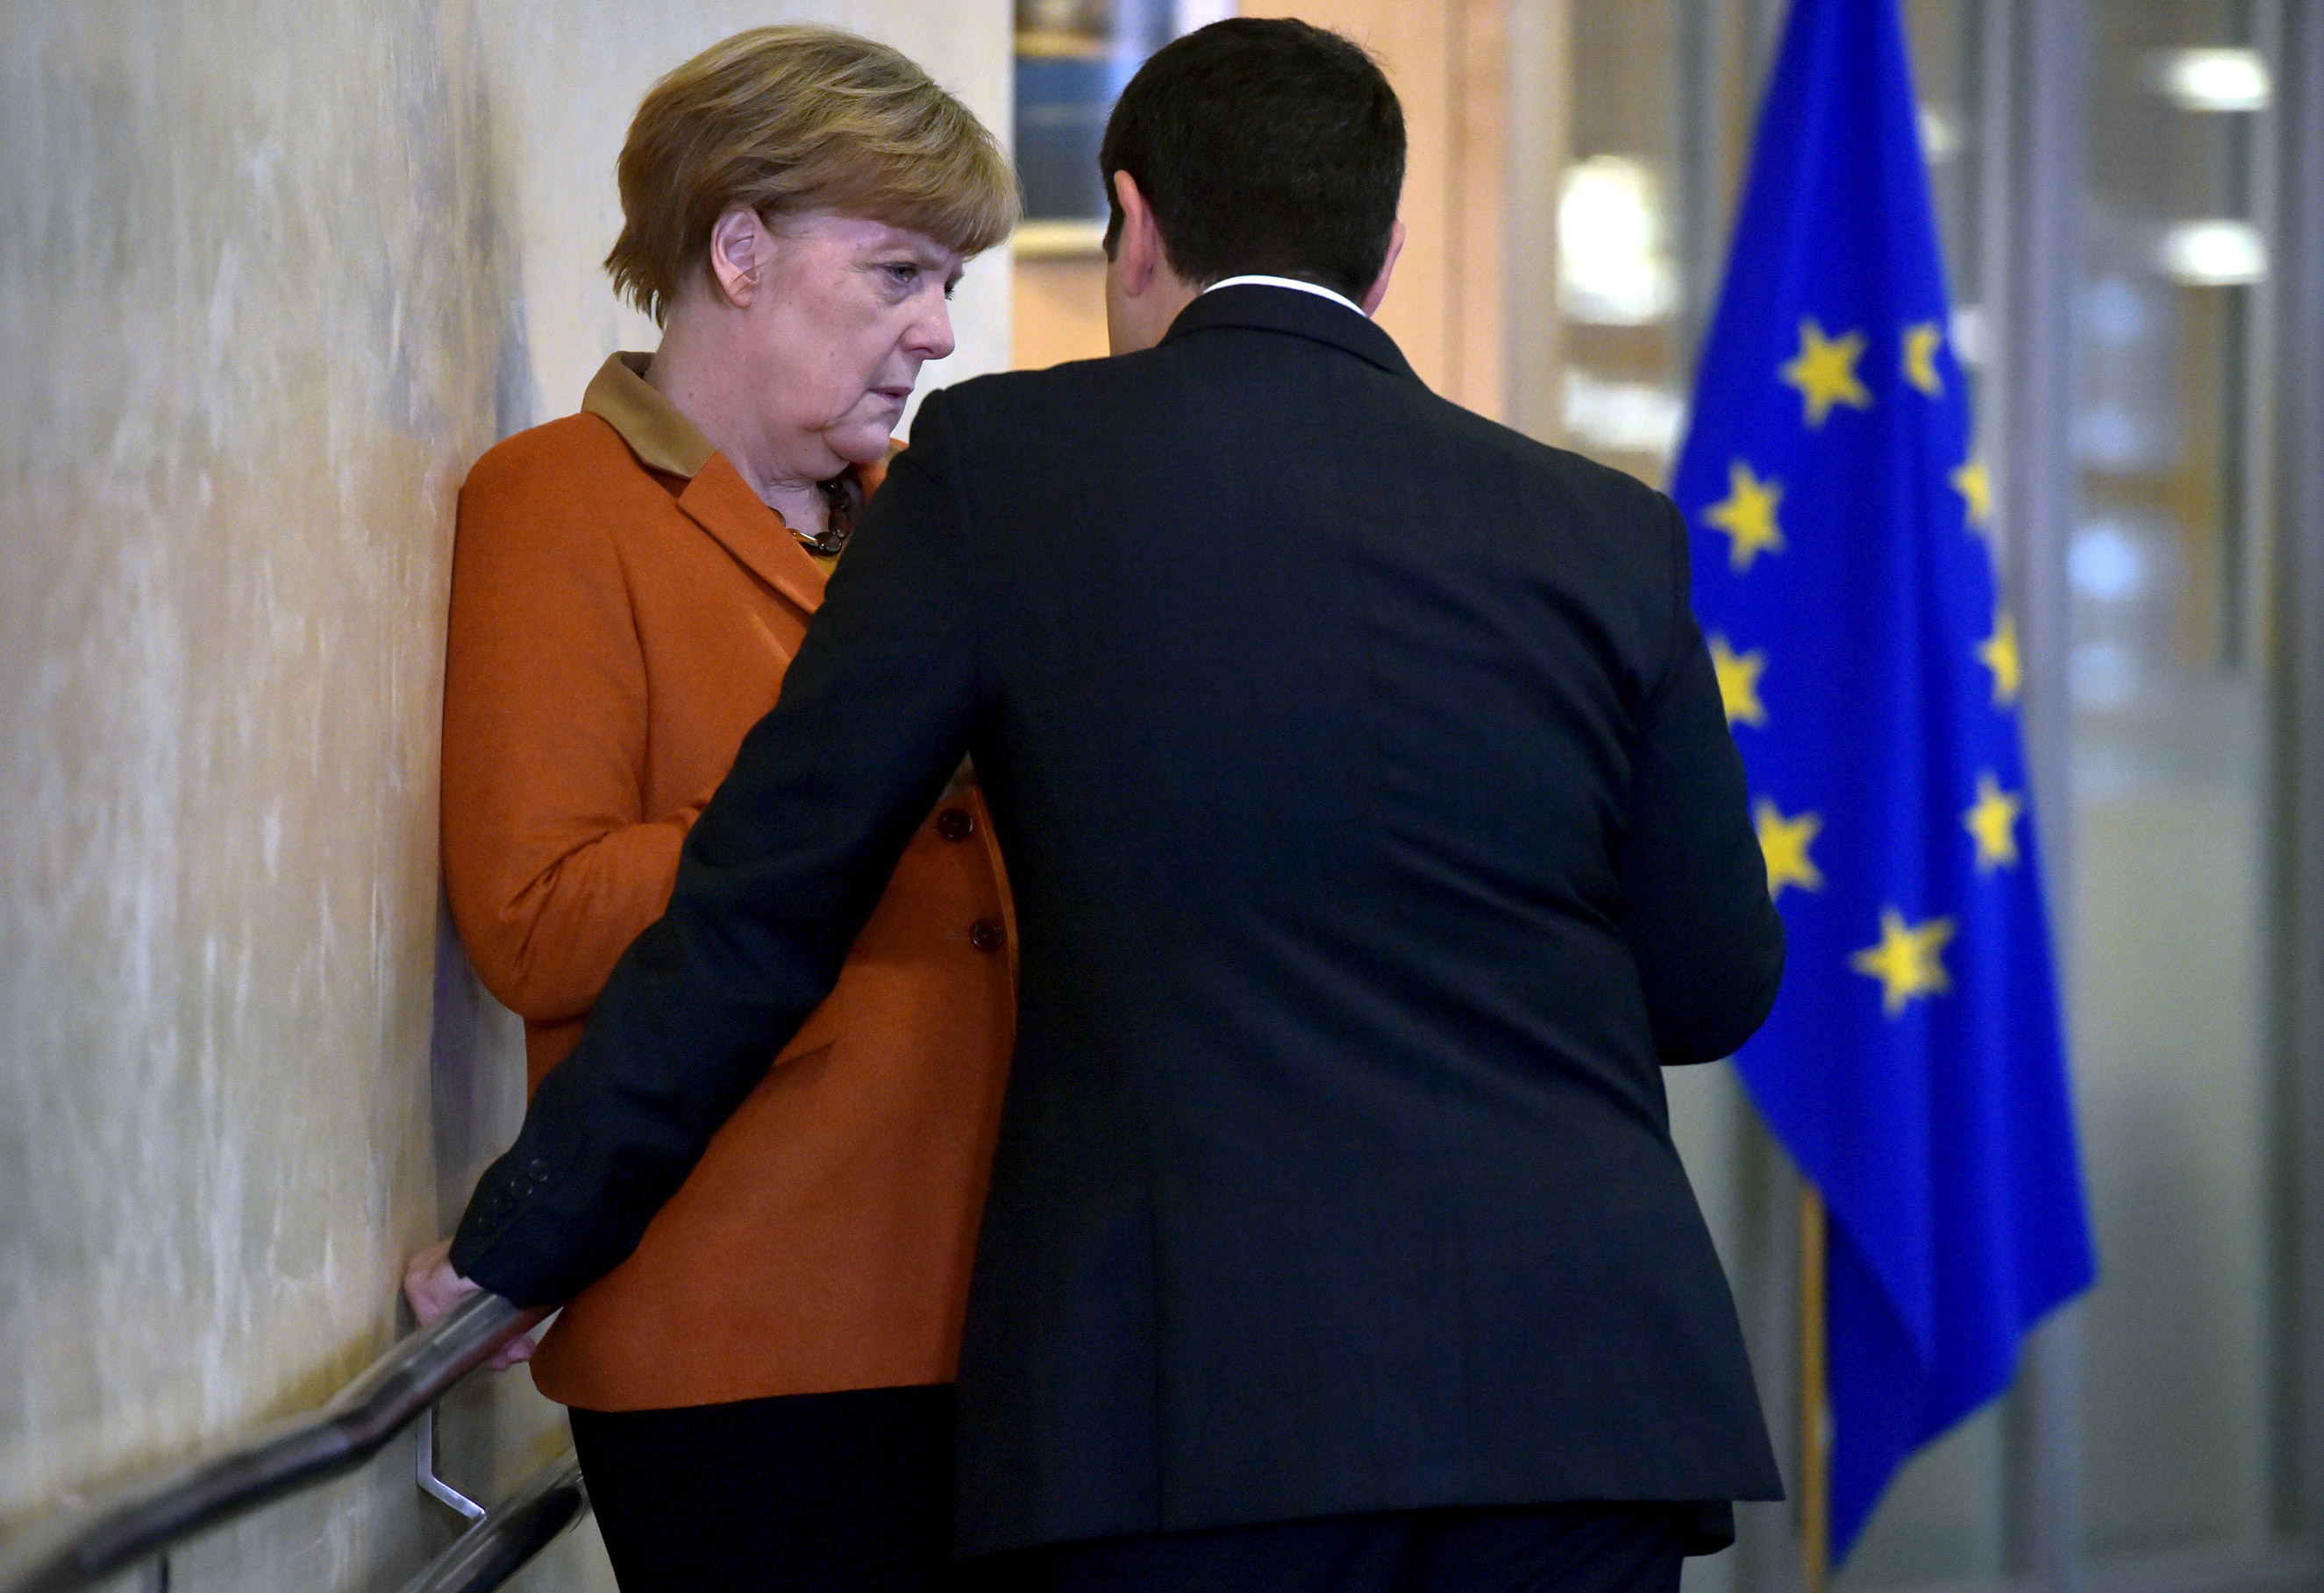 October: Greece's Prime Minister Alexis Tsipras talks with Chancellor Angela Merkel prior to a meeting over the Balkan refugee crisis with leaders from central and eastern Europe at the EU Commission headquarters in Brussels on Oct. 25, 2015.